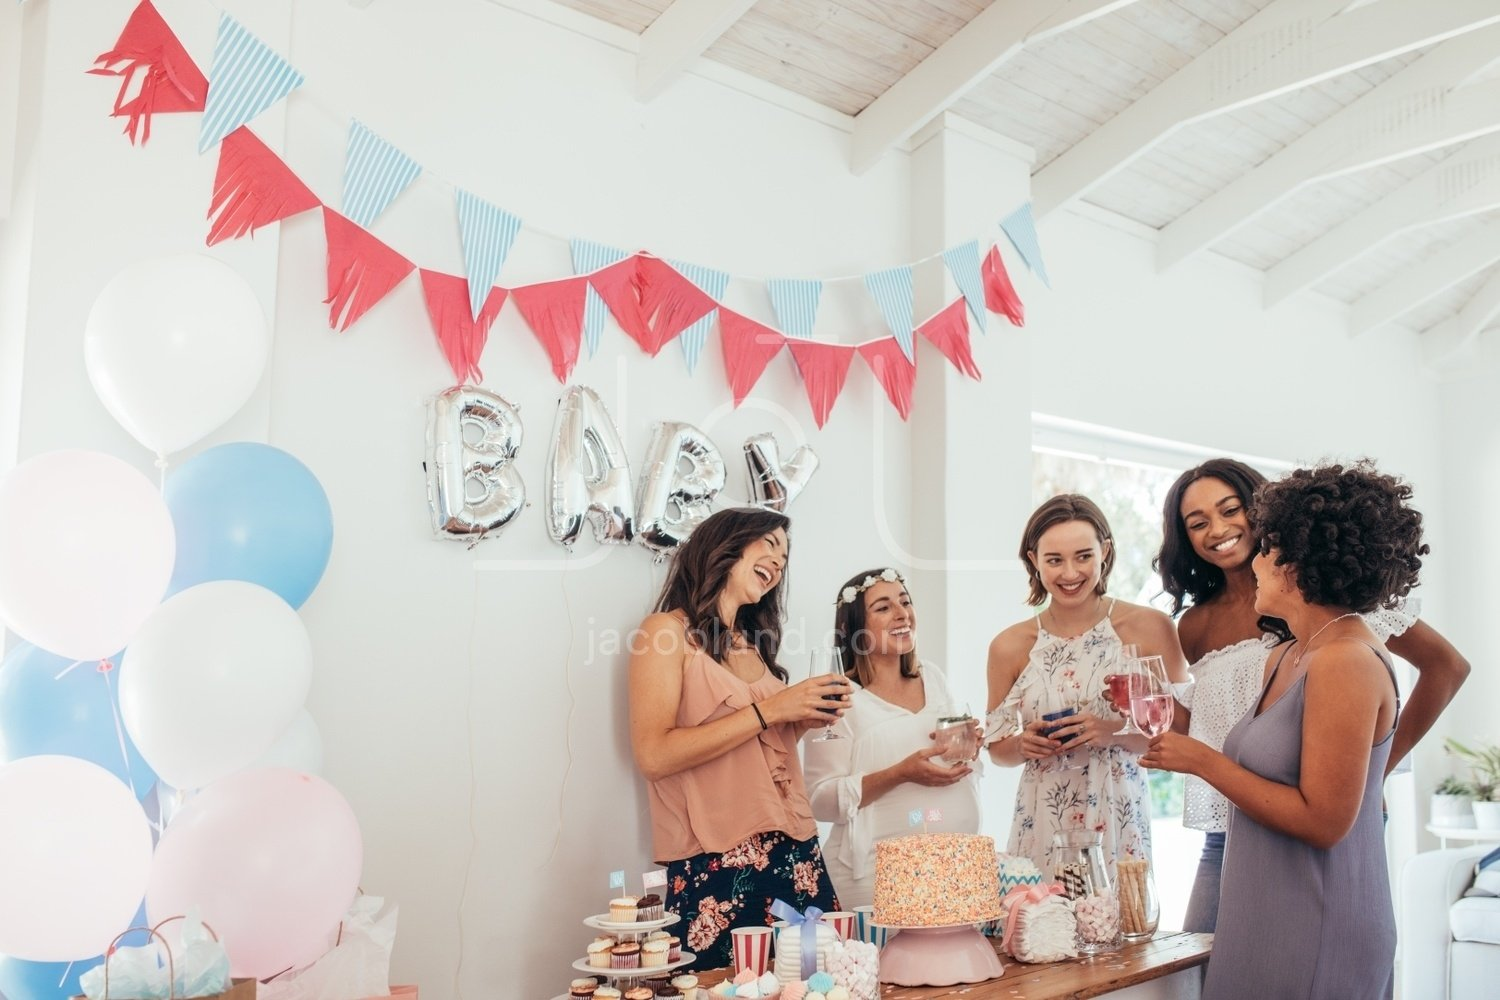 Pregnant Woman Celebrating Baby Shower With Friends Jacob Lund Photography Store Premium Stock Photo